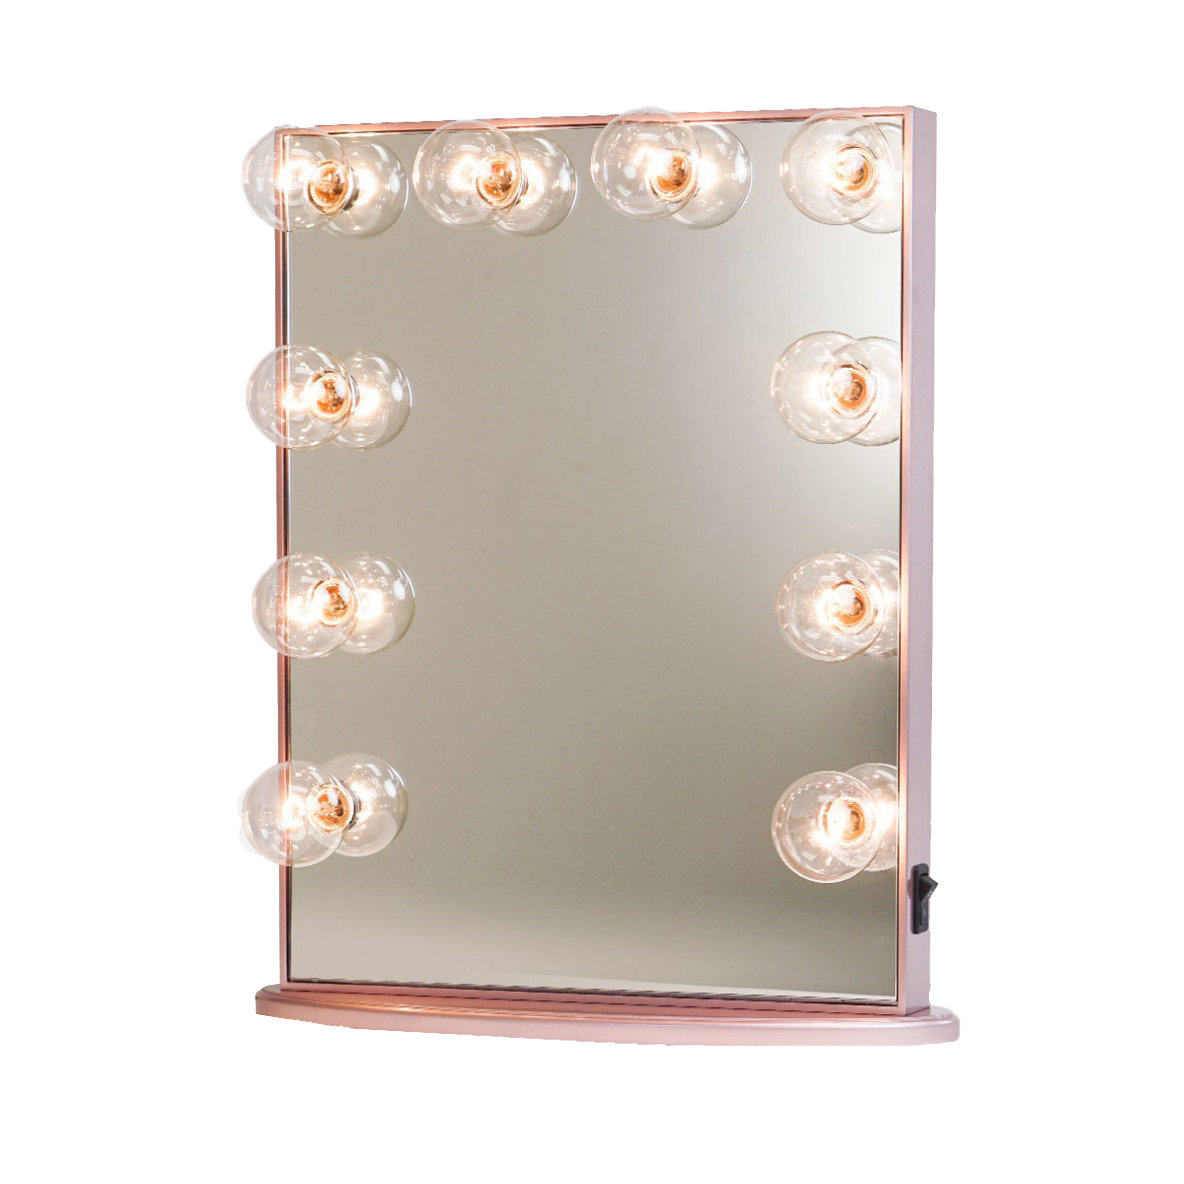 Bathroom Vanity Lights Stopped Working 6 lighting options to help you flawlessly apply your makeup